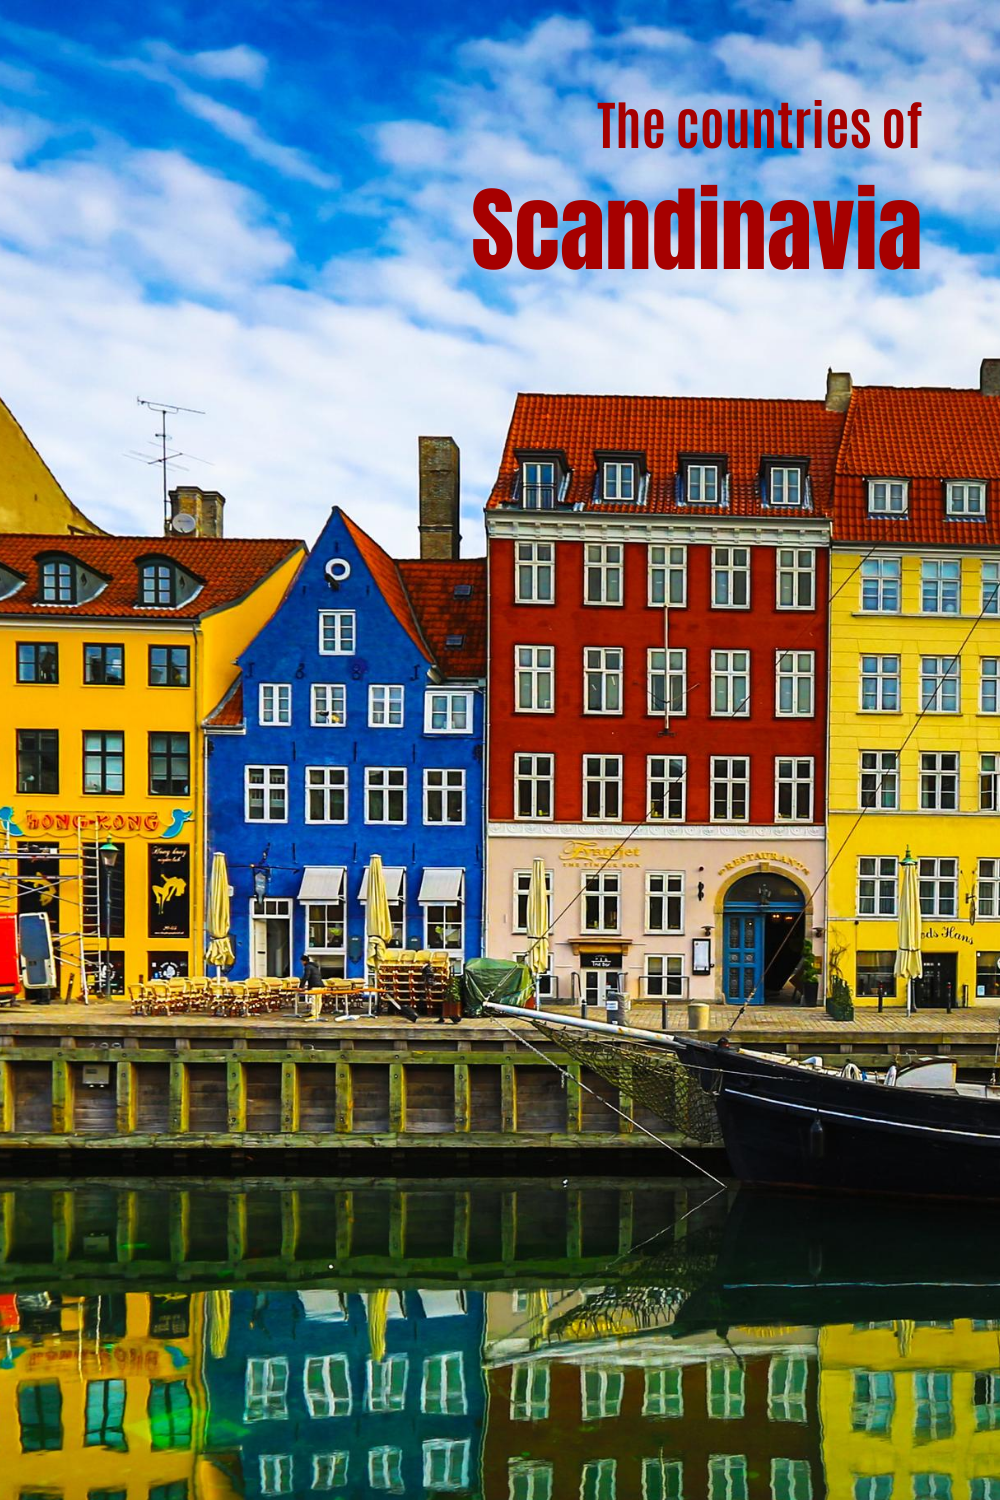 These Are The Scandinavian Countries In 2020 Scandinavian Countries Scandinavia Scandinavian